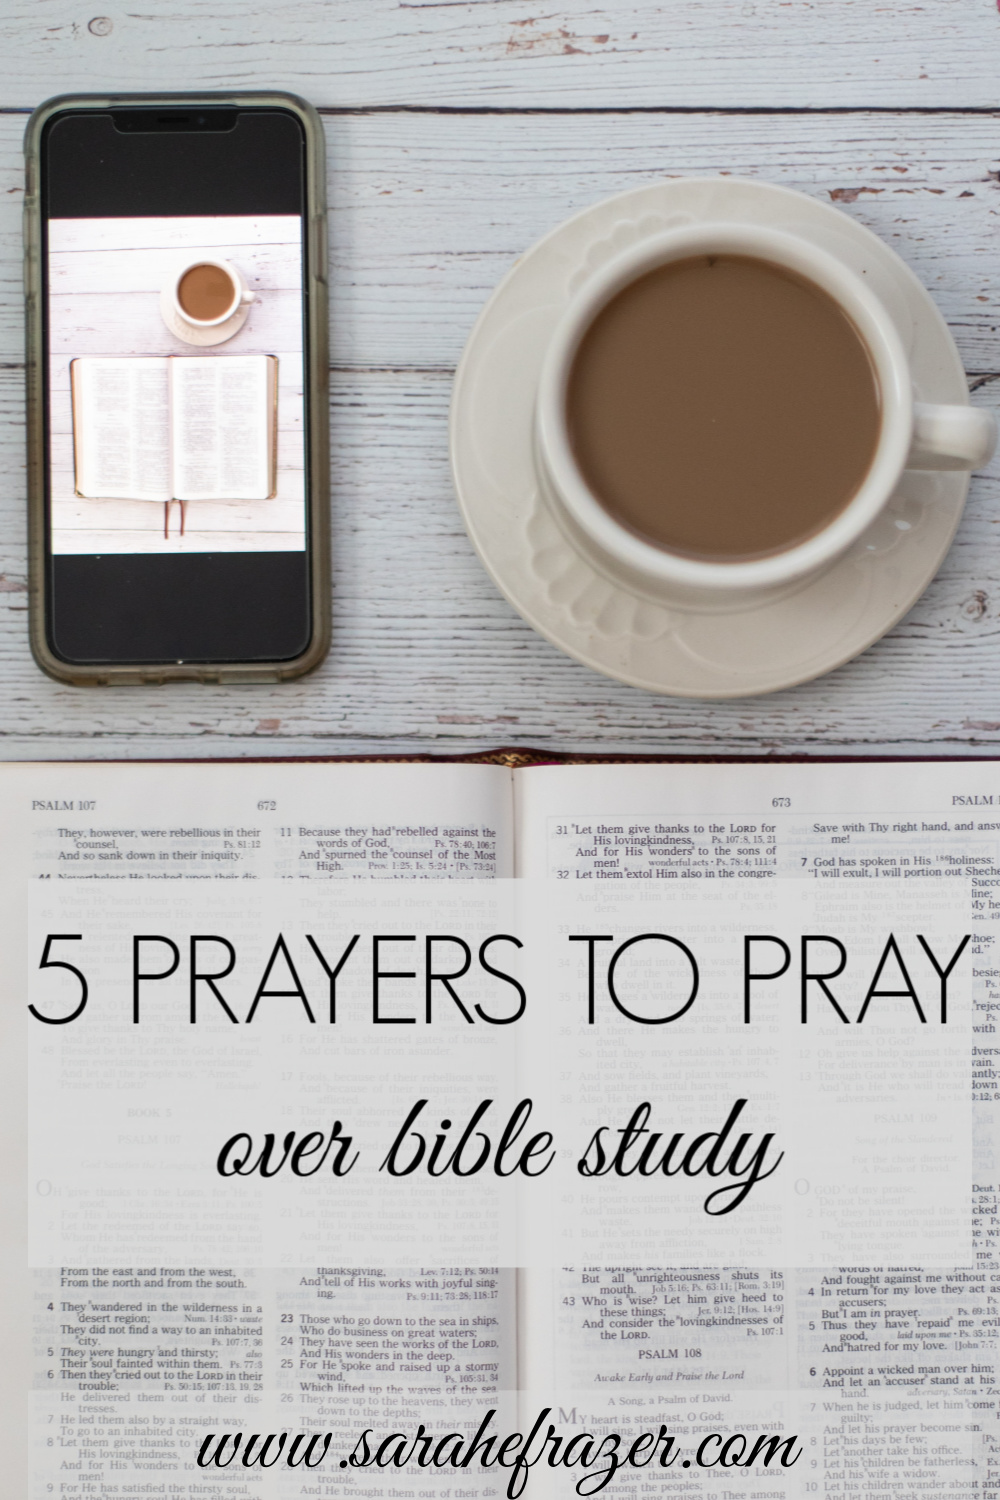 5 (More) Prayers to Pray Over Bible Study